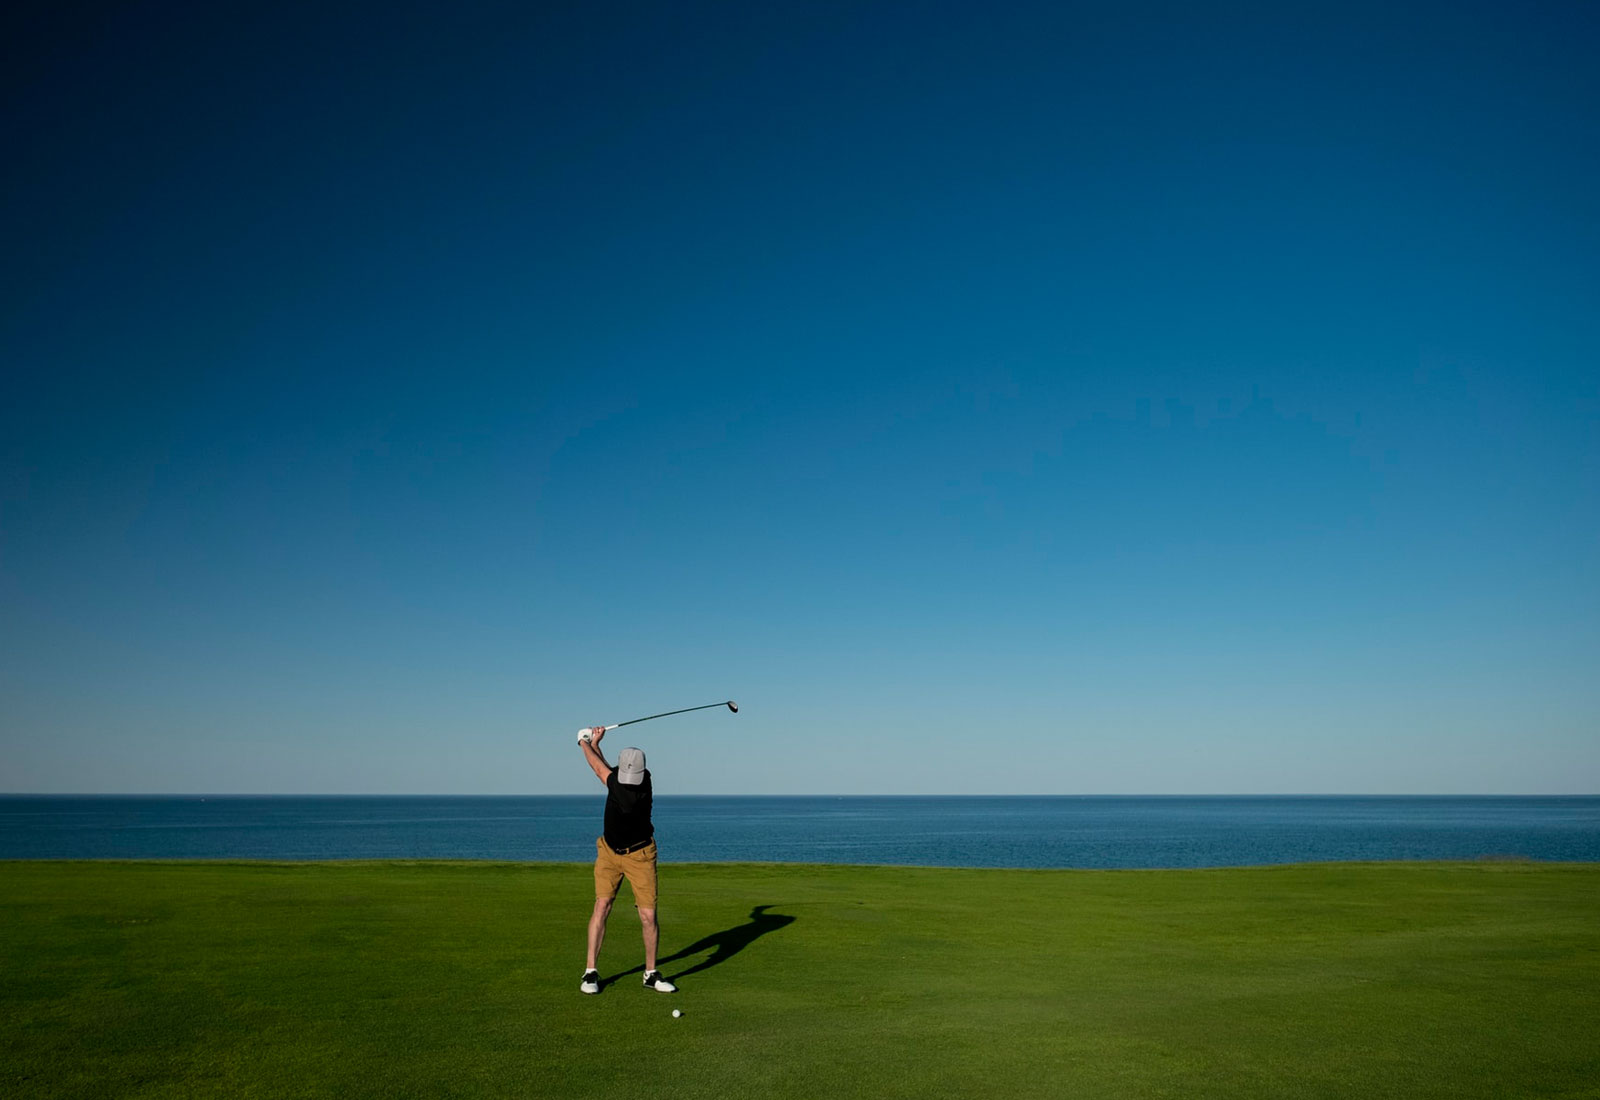 Some locations of the US Open will have views of the blue ocean